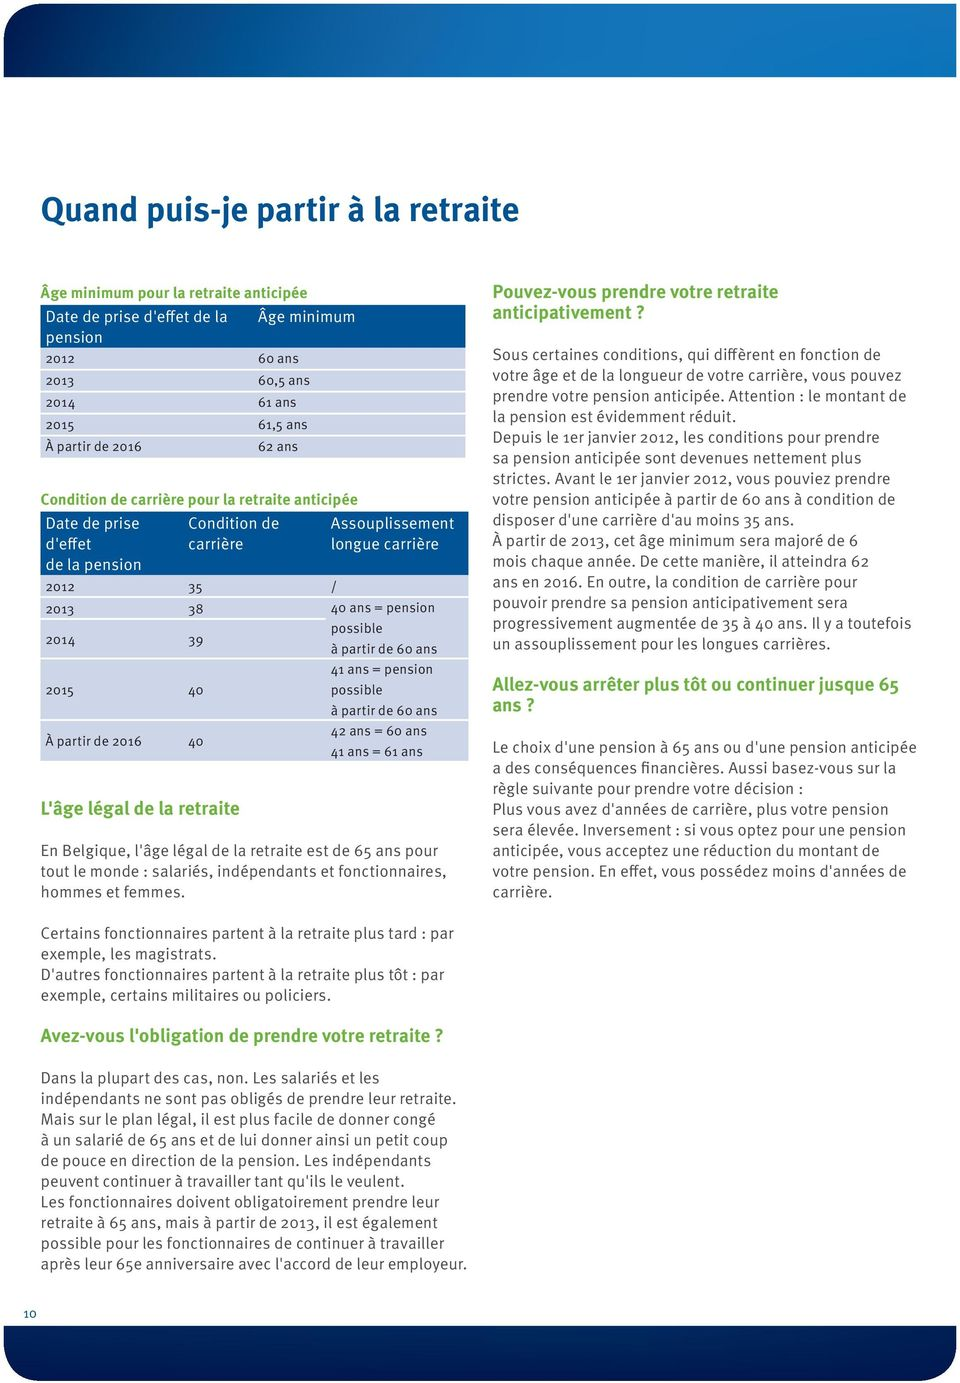 pension 2014 39 possible à partir de 60 ans 2015 40 41 ans = pension possible à partir de 60 ans À partir de 2016 40 42 ans = 60 ans 41 ans = 61 ans En Belgique, l'âge légal de la retraite est de 65